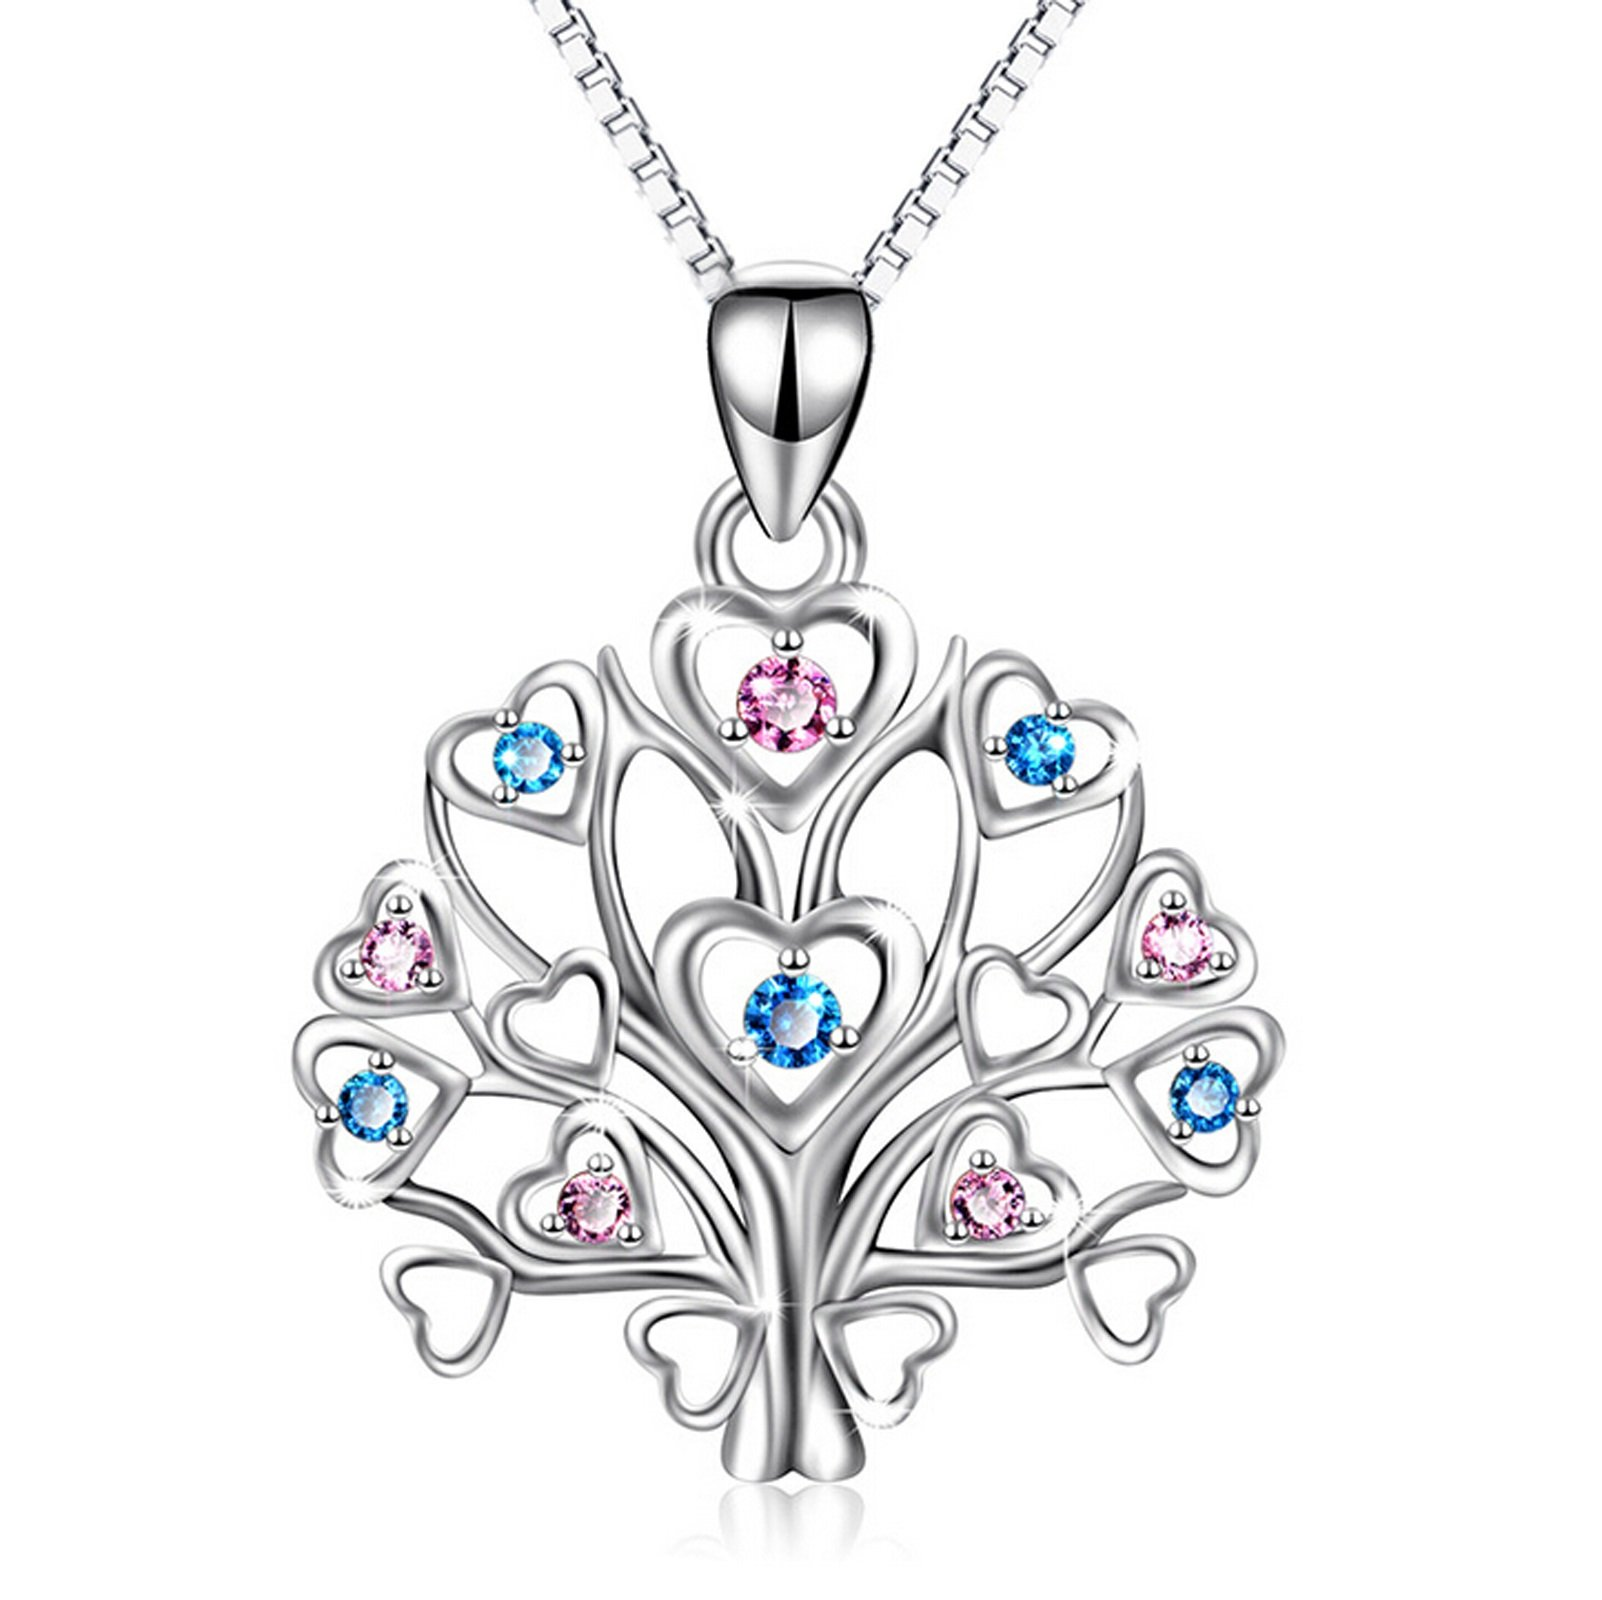 Aienid 925 Sterling Silver Tree of Life Necklace for Women Wedding Necklace Birthstone Jewelry Box Chain